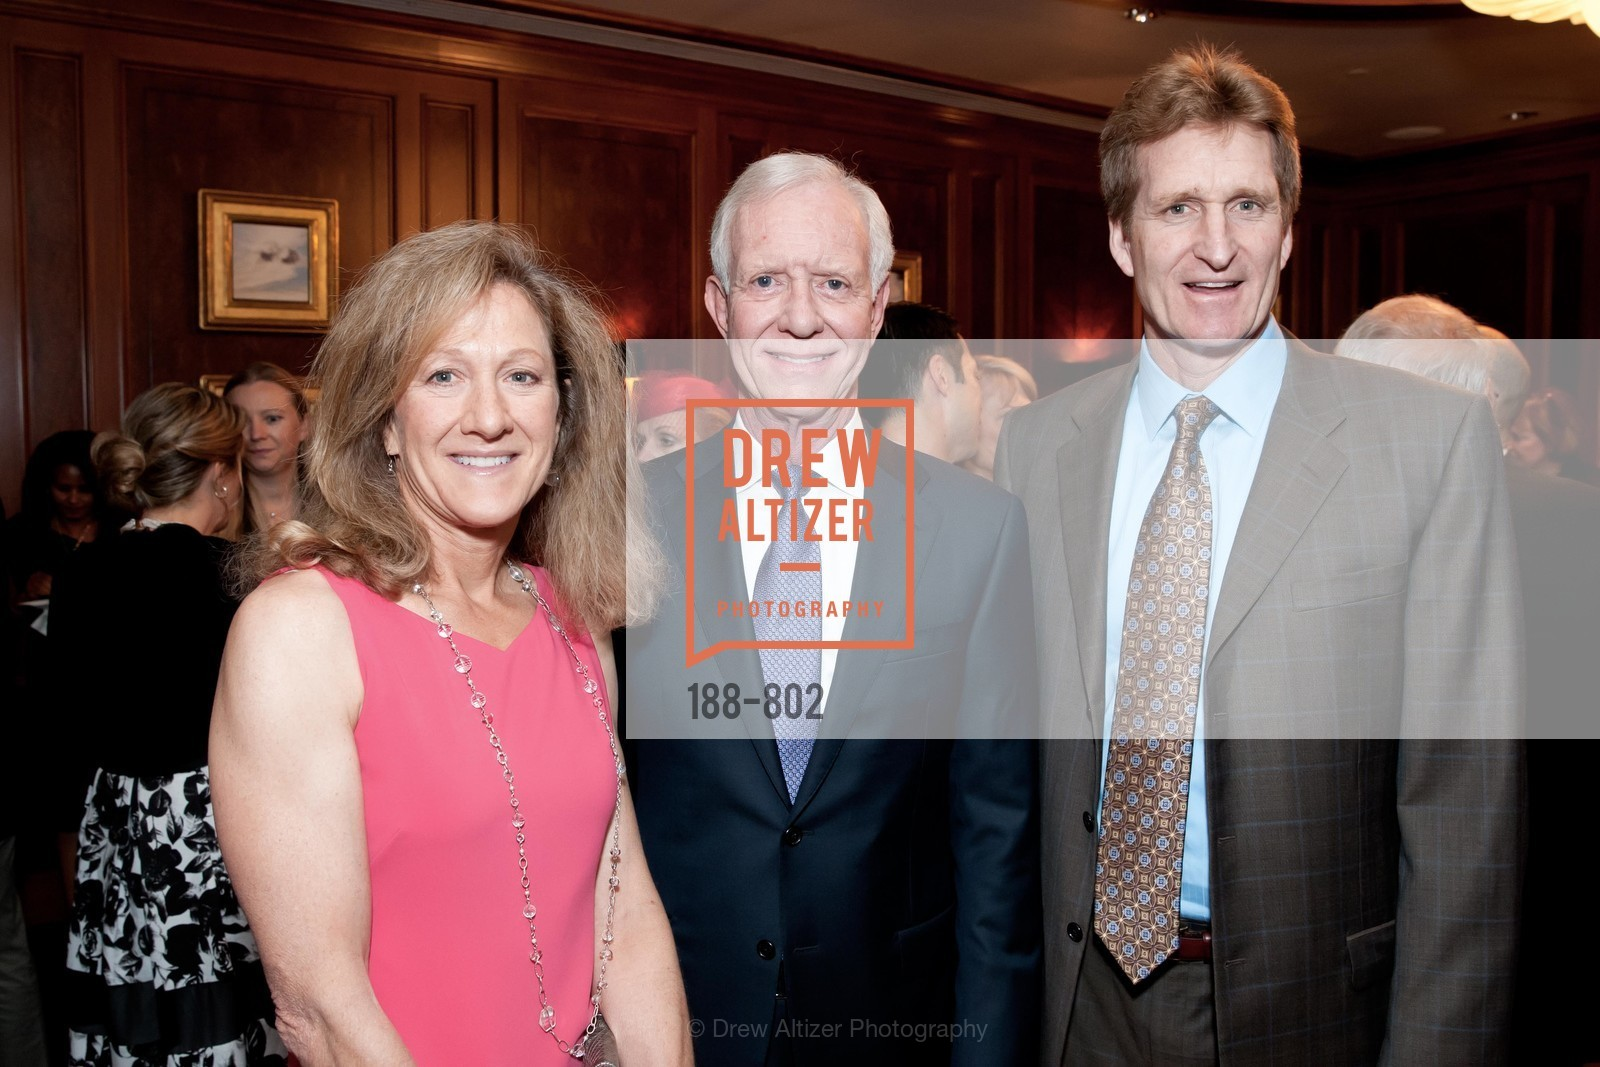 Becky Hettema, Sully Sullenberger, Jim Hettema, MR PORTER Celebrate The San Francisco Issue of The Journal, US, April 24th, 2015,Drew Altizer, Drew Altizer Photography, full-service agency, private events, San Francisco photographer, photographer california